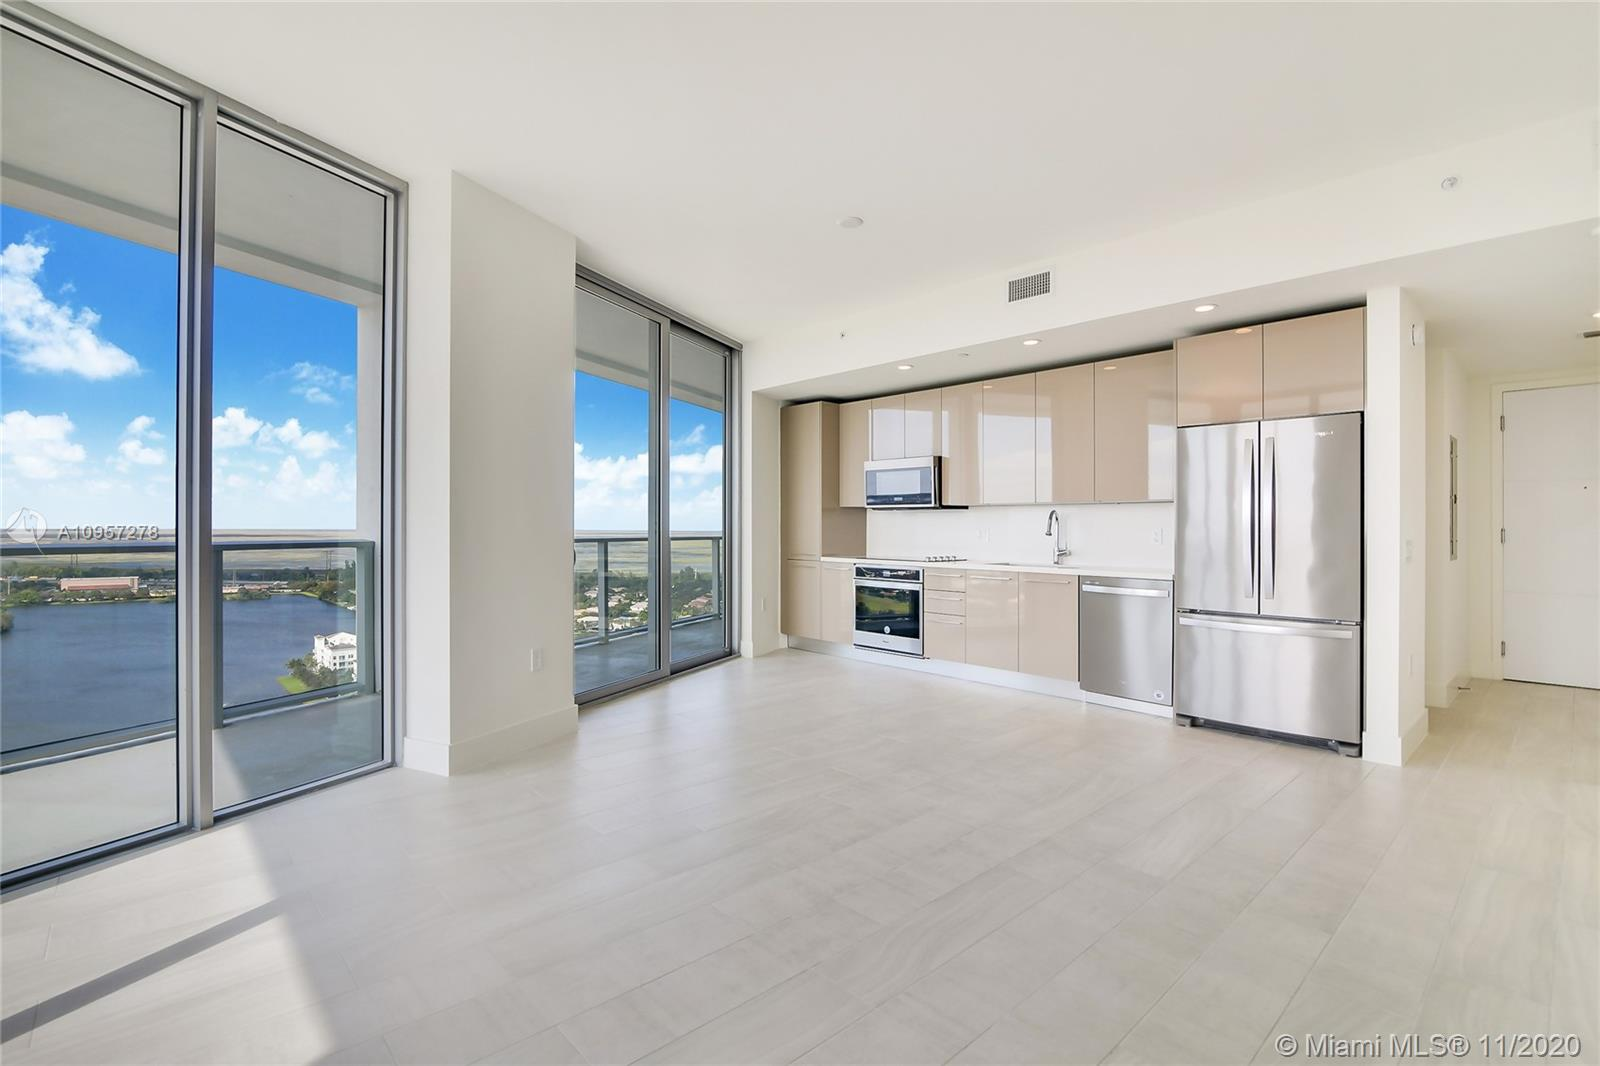 Be the first to live in this new home in the sky, why live in a used apartment when this has everything new for the same price! Enjoy sparkling new appliances and contemporary tile flooring throughout. The amenities are beyond compare, too many to list & Phillippe Starck's big city style compliments the property with luxury abound. Generous 2 bd layout, this is a great property large enough for those who want a home office and space to relax.